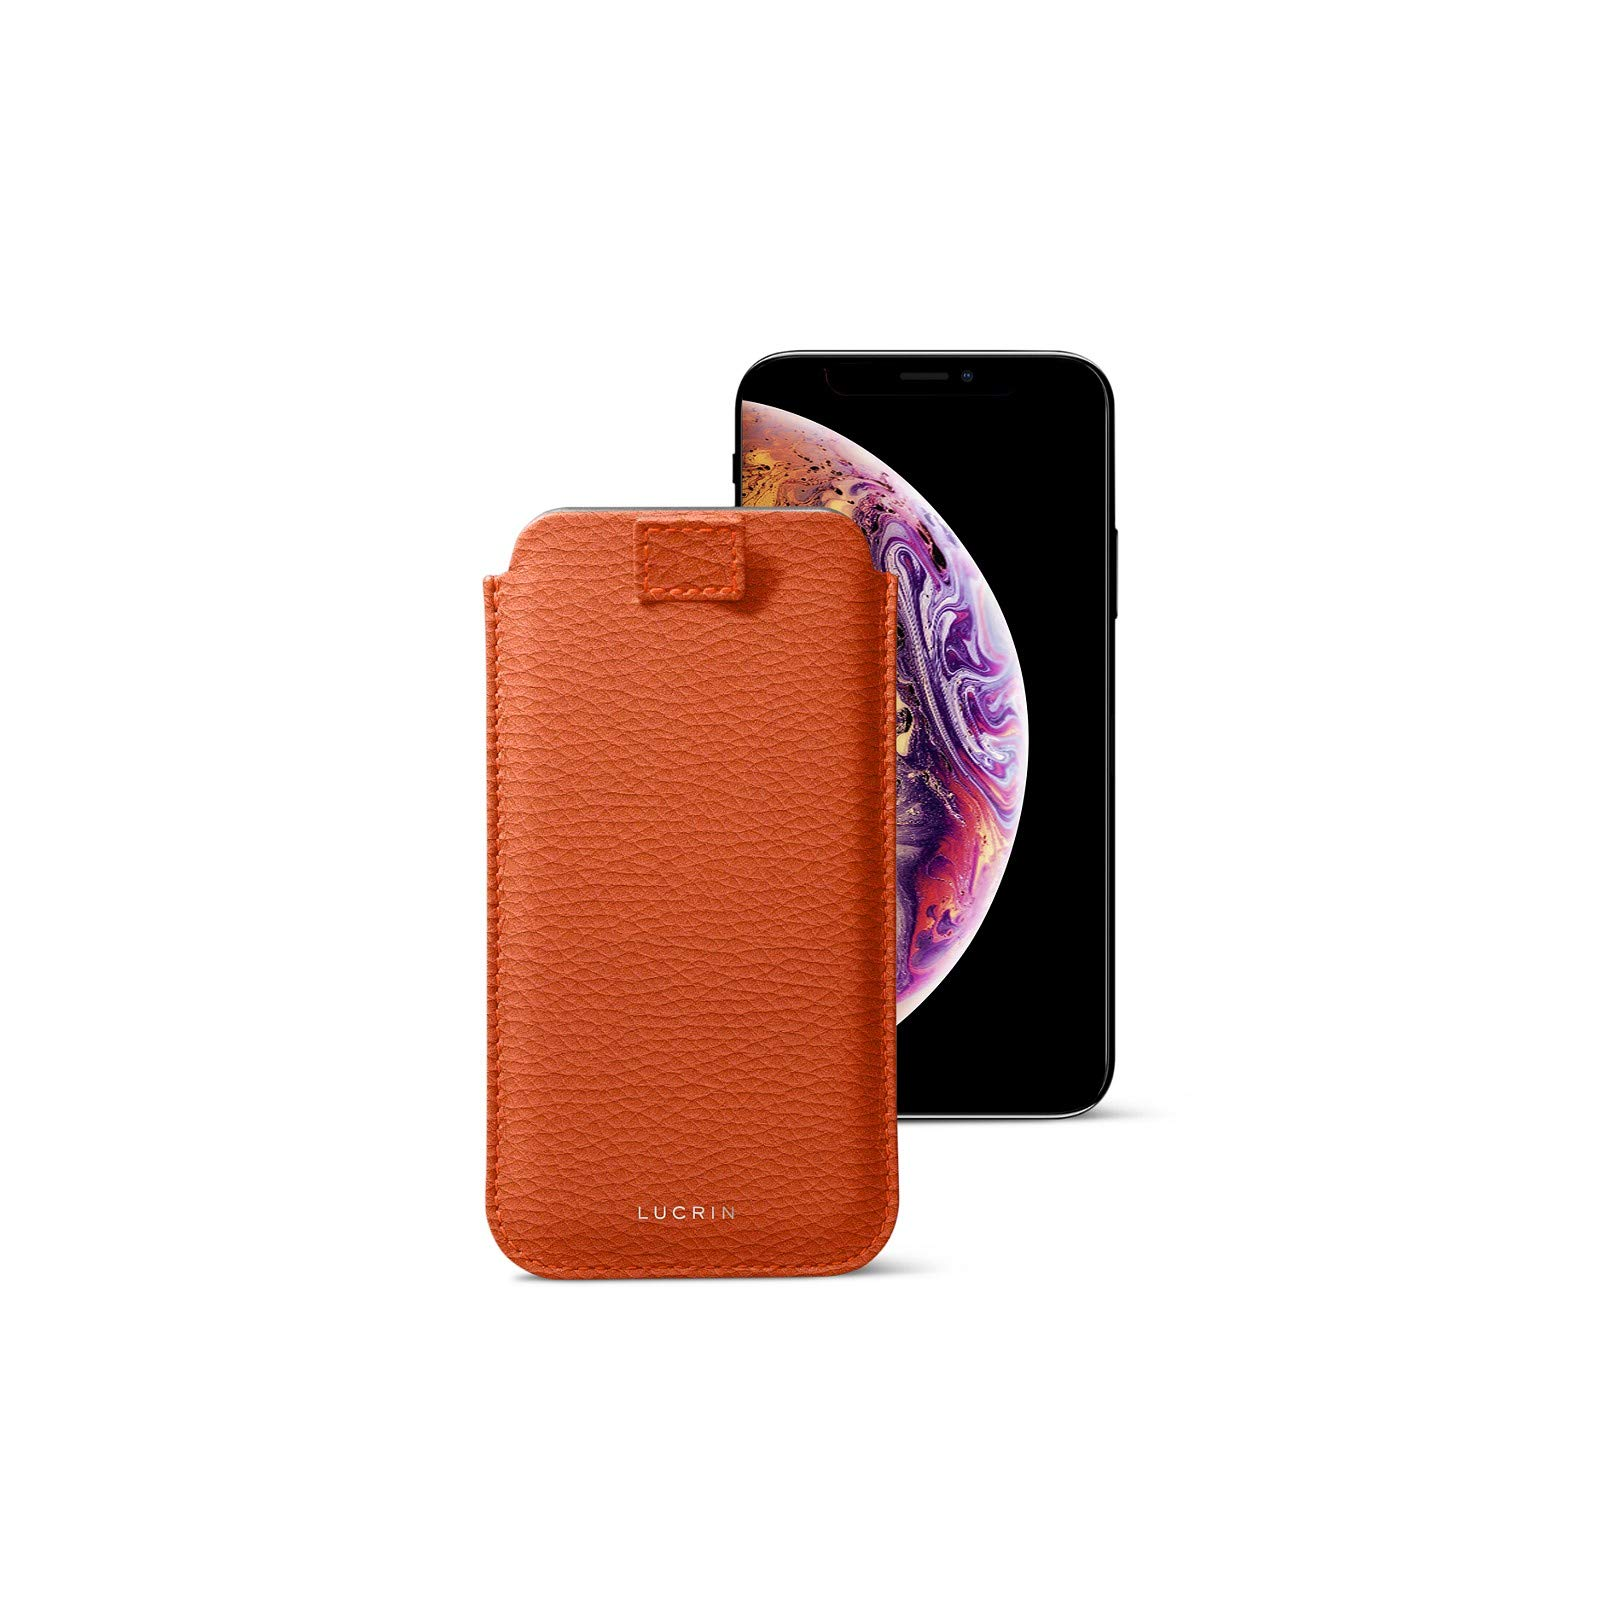 Lucrin - Pull-Up Strap Case Sleeve Cover Compatible with iPhone Xs Max/ 8 Plus/ 7 Plus and Wireless Charging - Orange - Granulated Leather